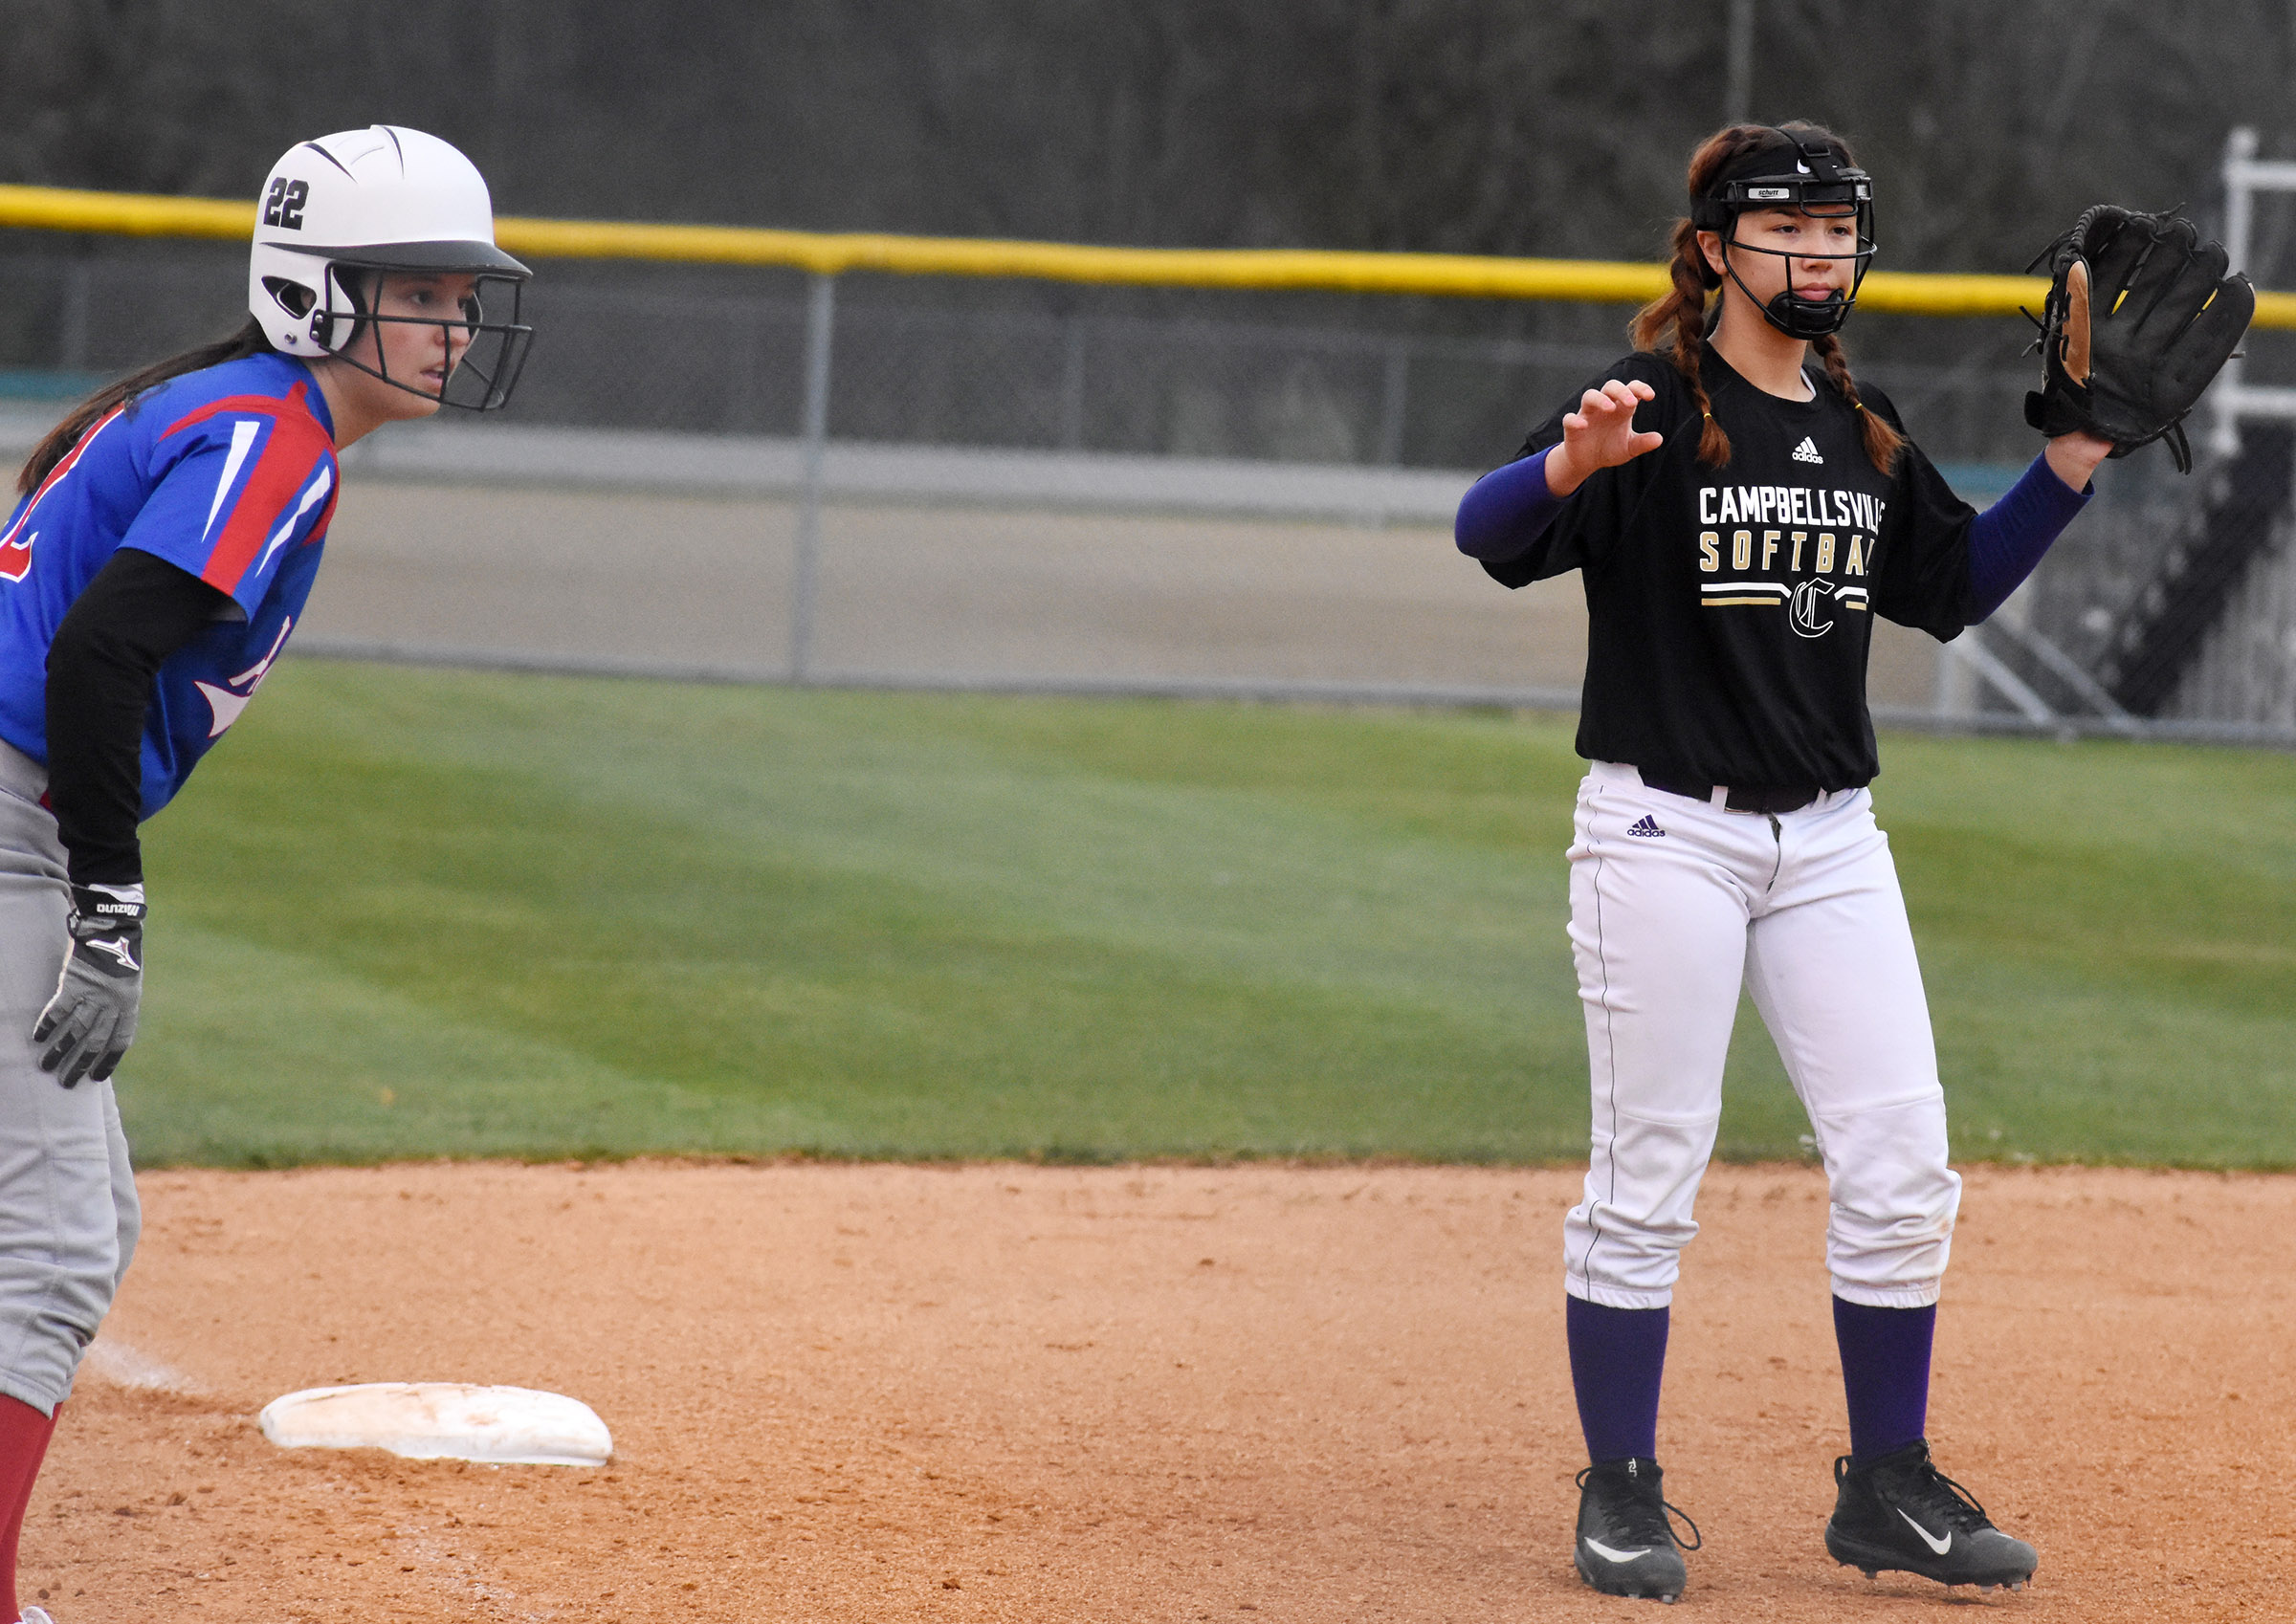 Campbellsville Middle School eighth-grader Olivia Fields mans third base.